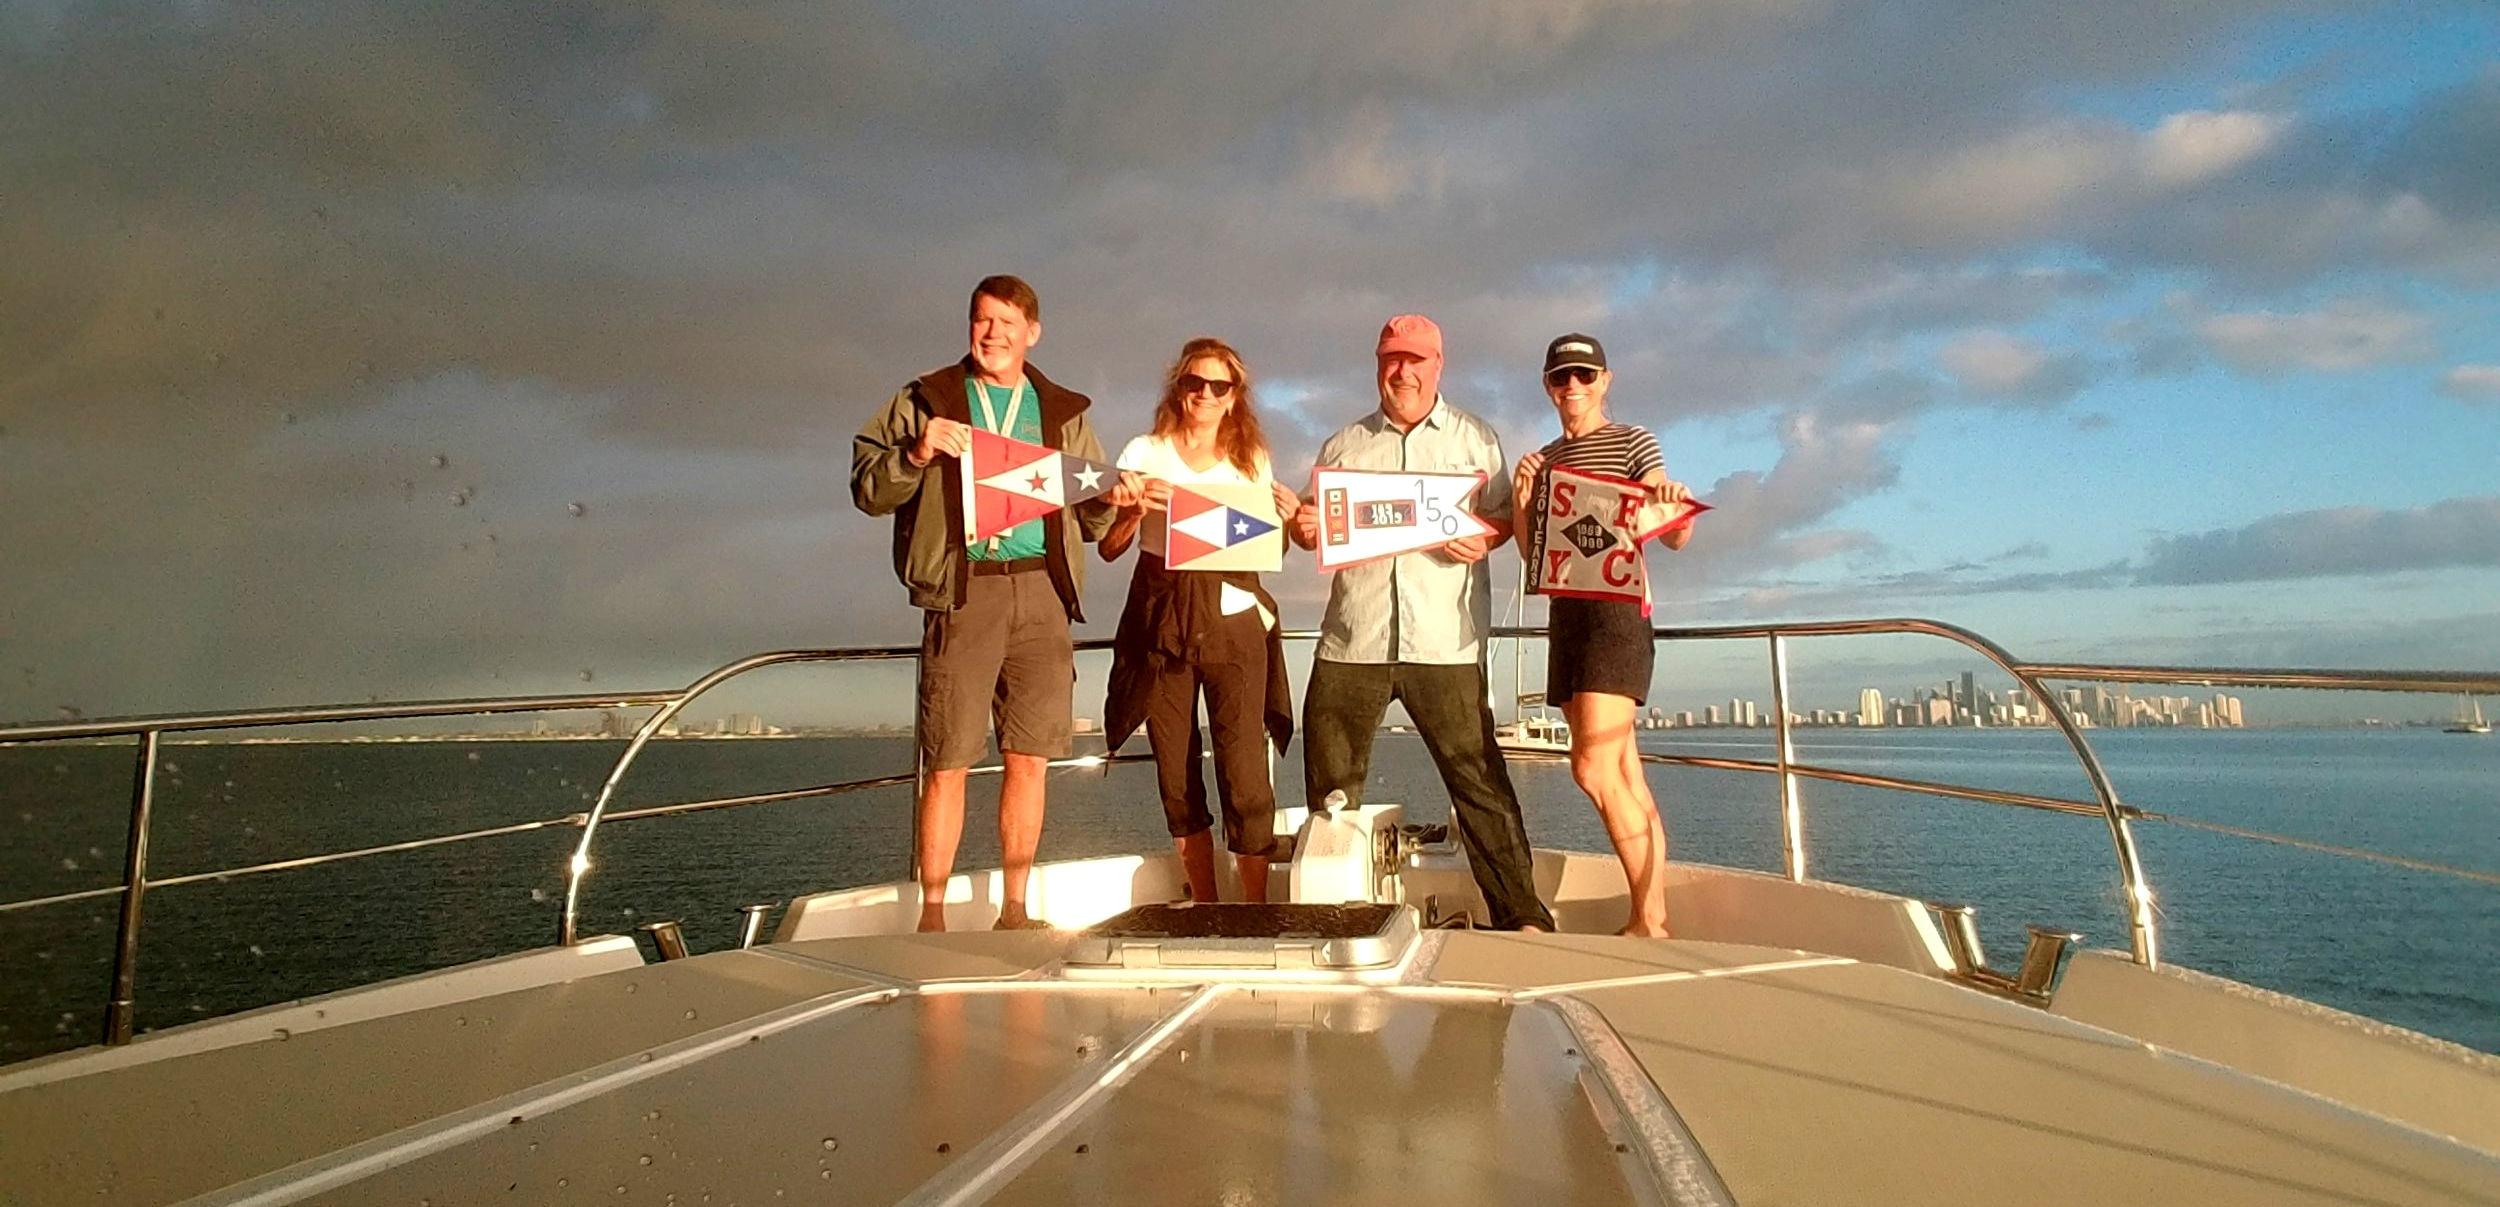 The 'Burgee Brigade' on the deck of The Independence in front of the Miami skyline, Biscayne Bay, FL. Larry holds the SFYC burgee, Kappy - the 150 Anniversary Book, Mark - our 150 year anniversary burgee & Jamie - the 120 year anniversary burgee